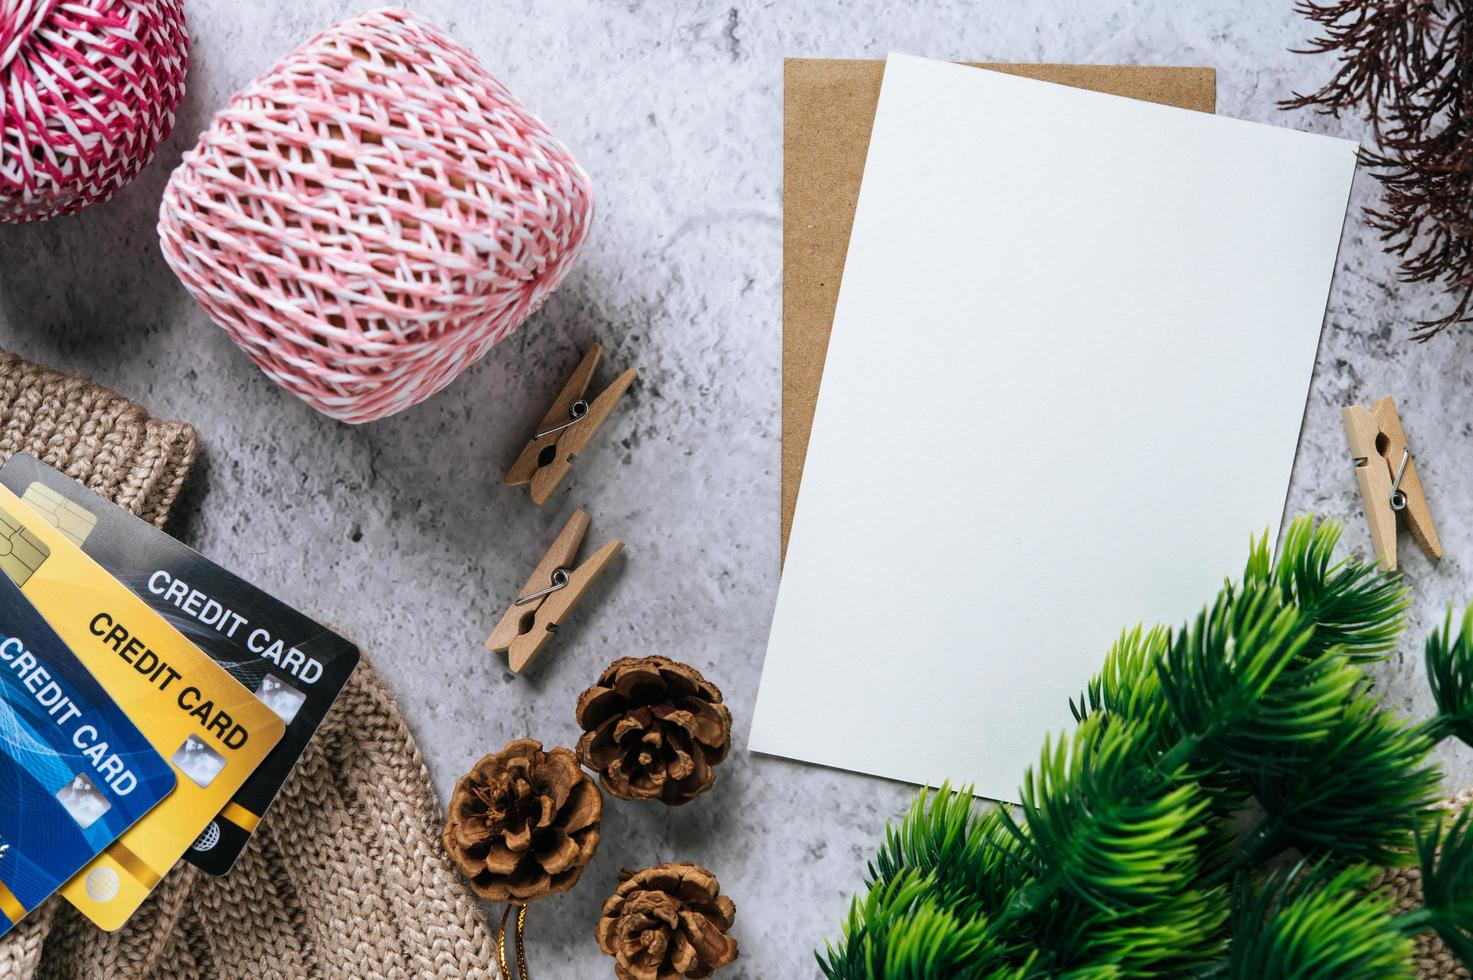 Postcard, stationery and credit card photo